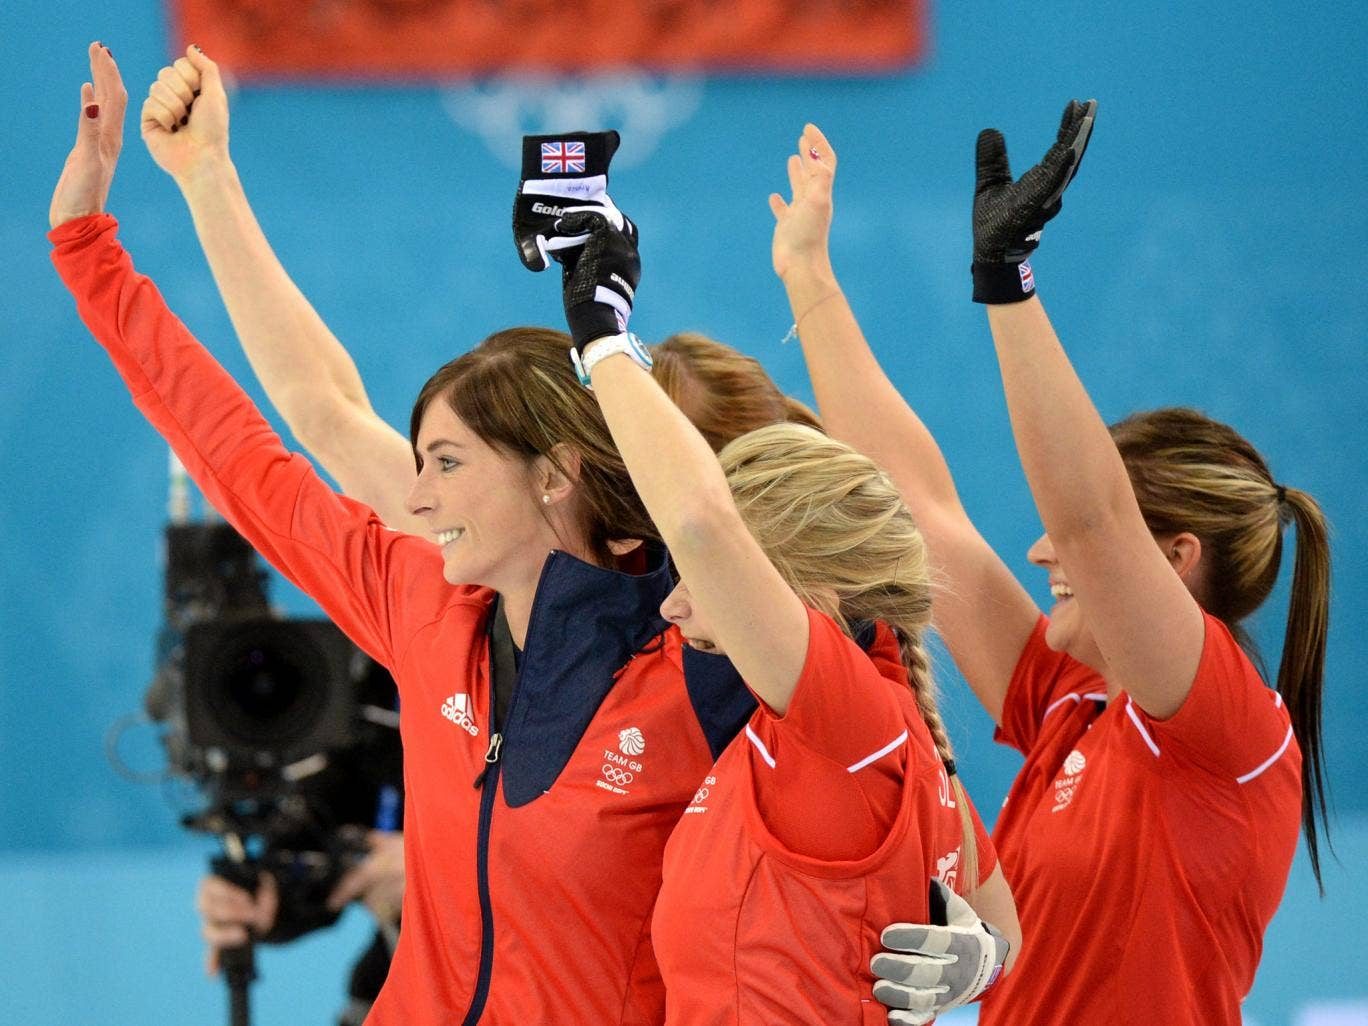 Great Britain's Anna Sloan, Eve Muirhead, Vicki Adams and Claire Hamilton celebrate after winning the Women's Curling Bronze Medal Game at the Ice Cube Curling Center